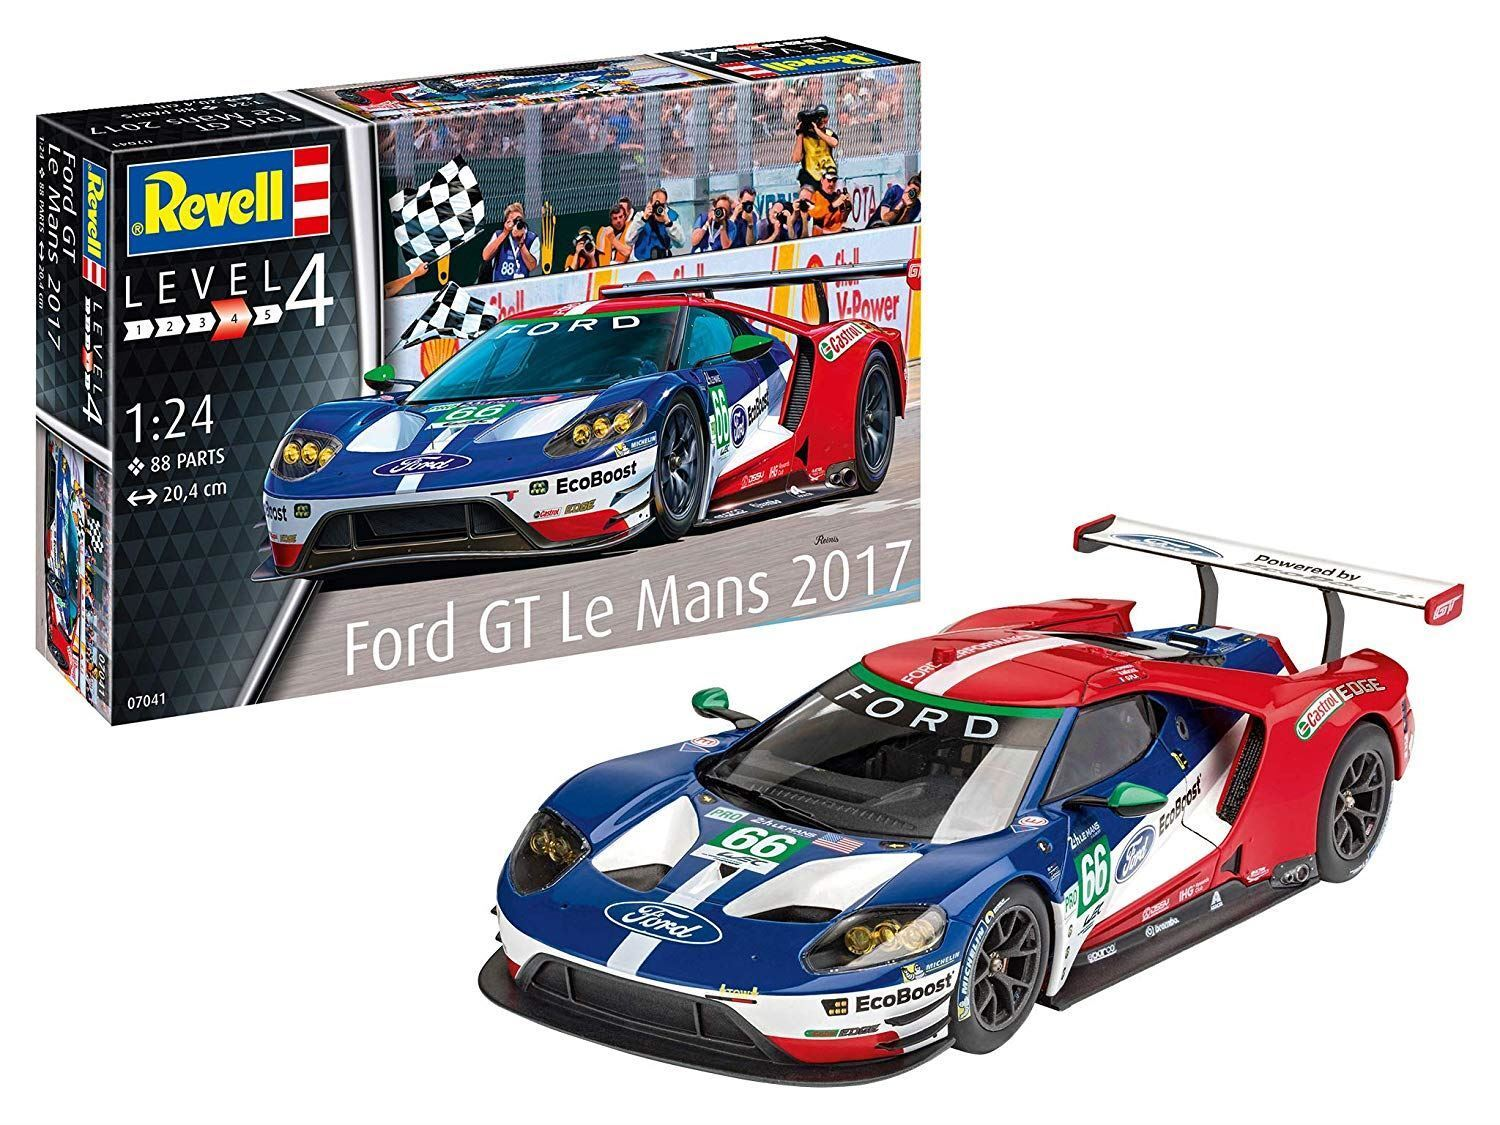 Revell 1 24 Ford GT (Le Mans) Model Set - 67041